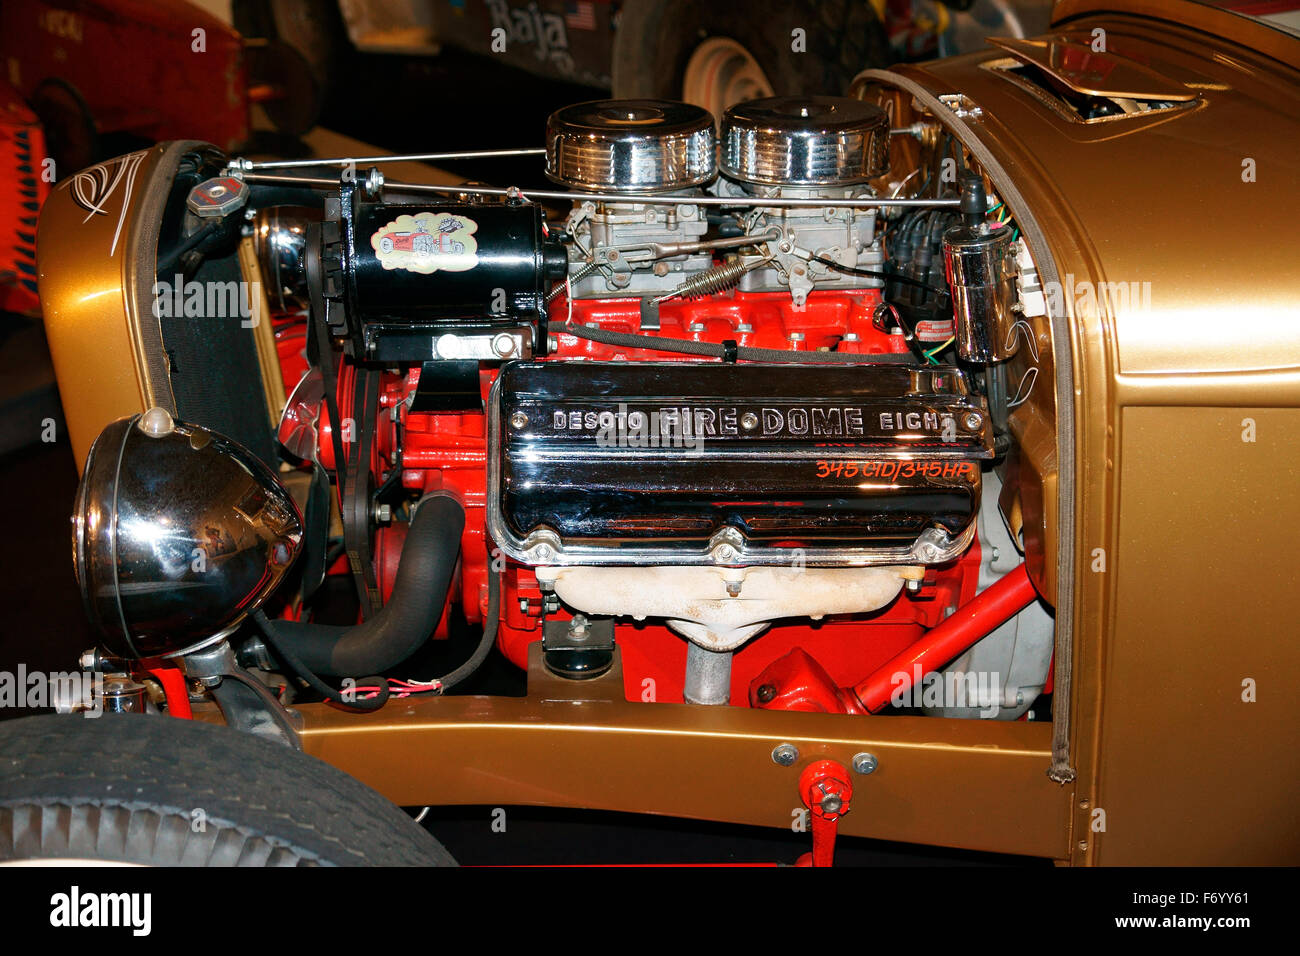 DESOTO FIRE-DOME EIGHT CYLINDER 5.7 LITRE. 345 CID / 345 HP TWIN CARB. Stock Photo